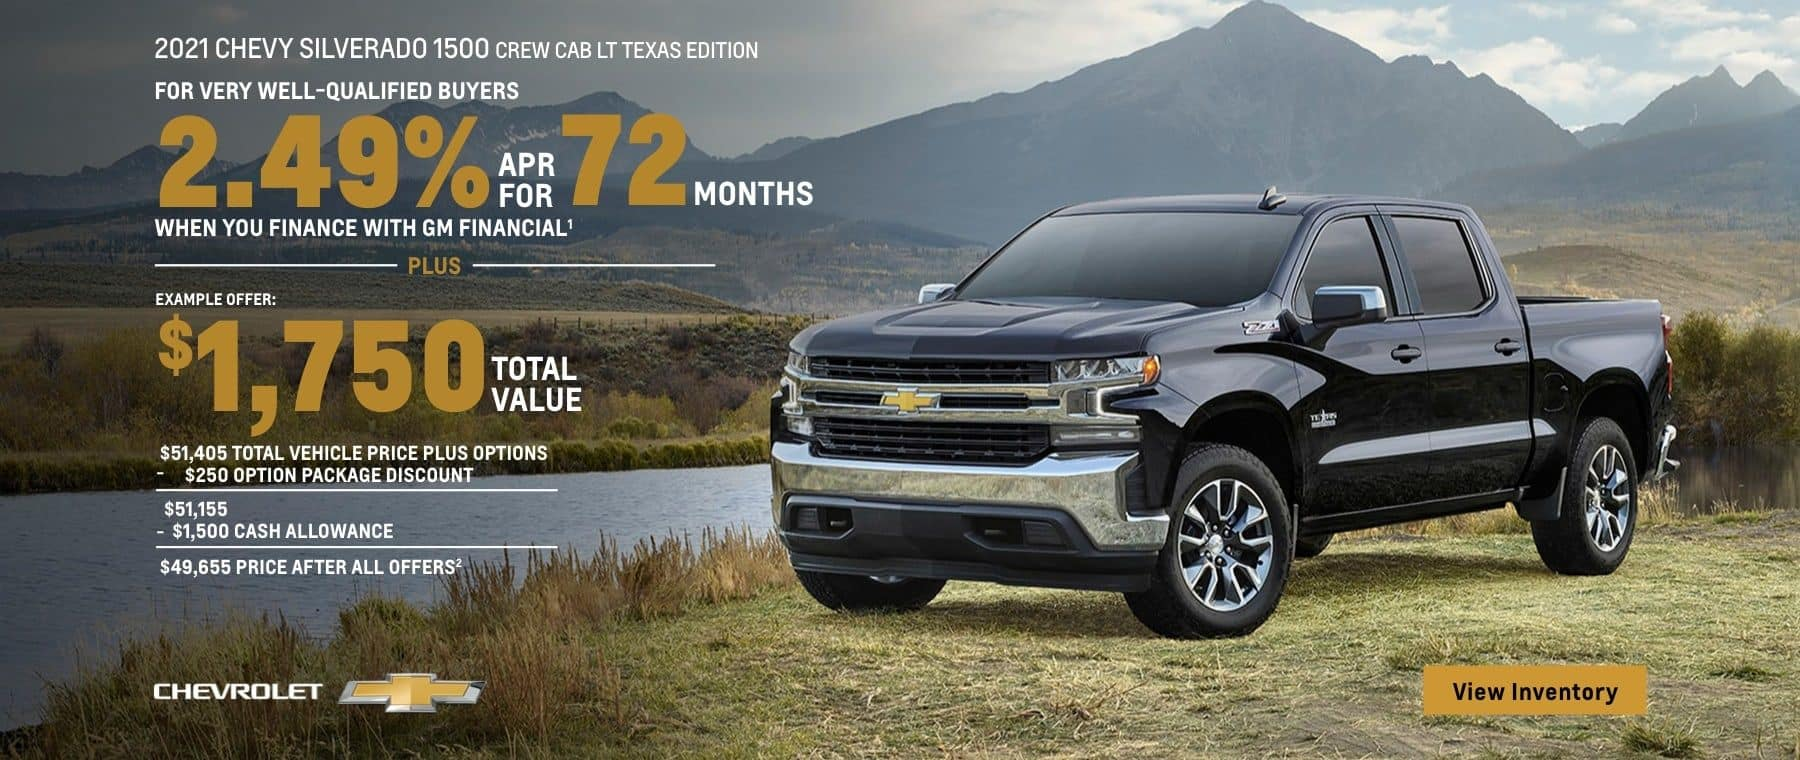 2021 Chevy Silverado 1500 Crew Cab LT Texas Edition. For very well-qualified buyers 2.49% APR for 72 months when you finance with GM Financial. Plus, $1,750 total value.